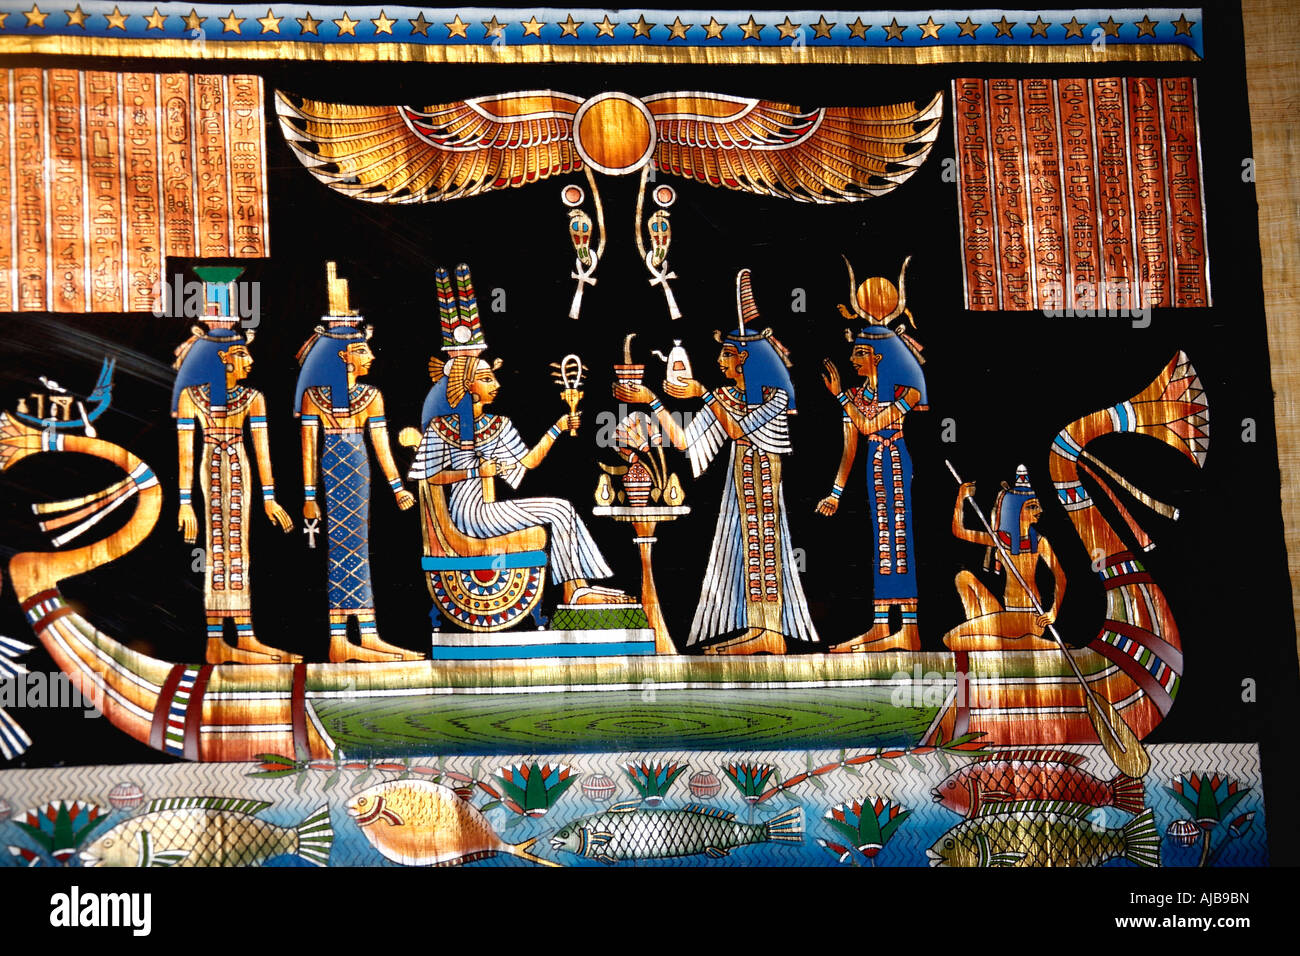 Beautiful example of papyrus paper painting art in gallery Cairo Egypt Africa - Stock Image